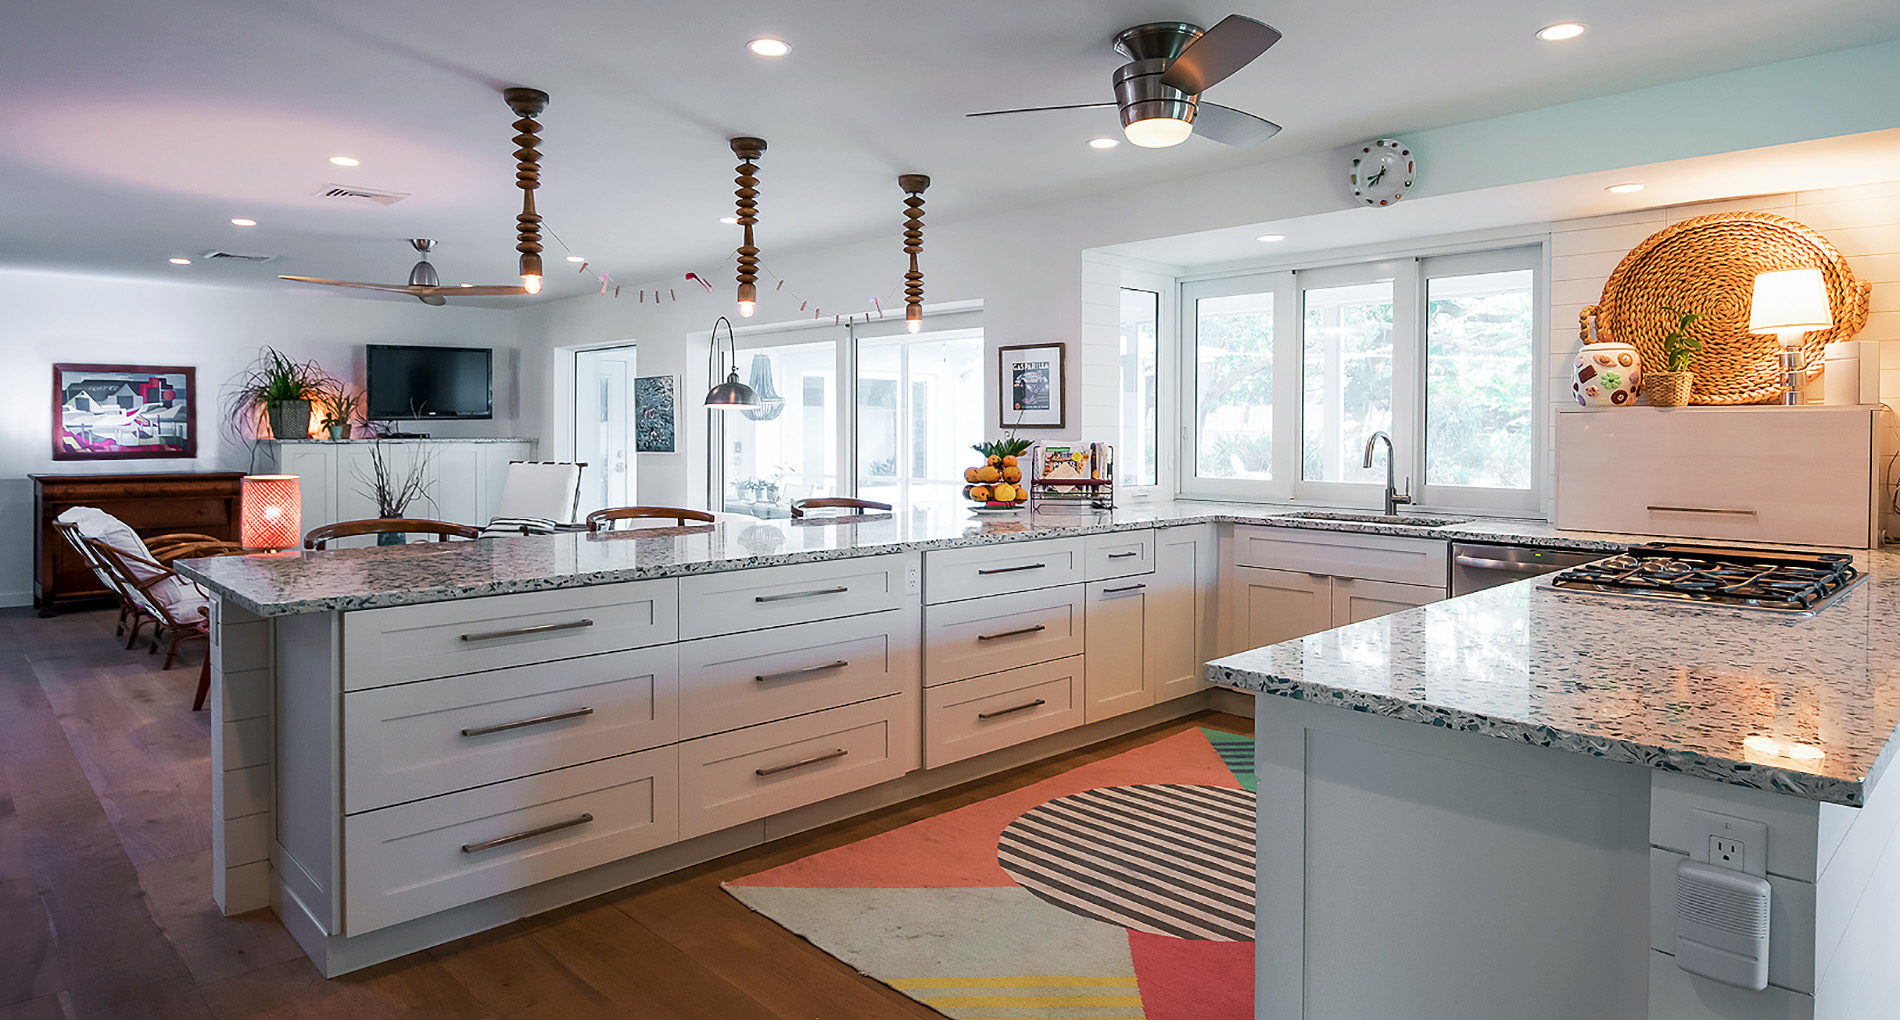 south tampa custom kitchen remodeling & design | alair homes south tampa